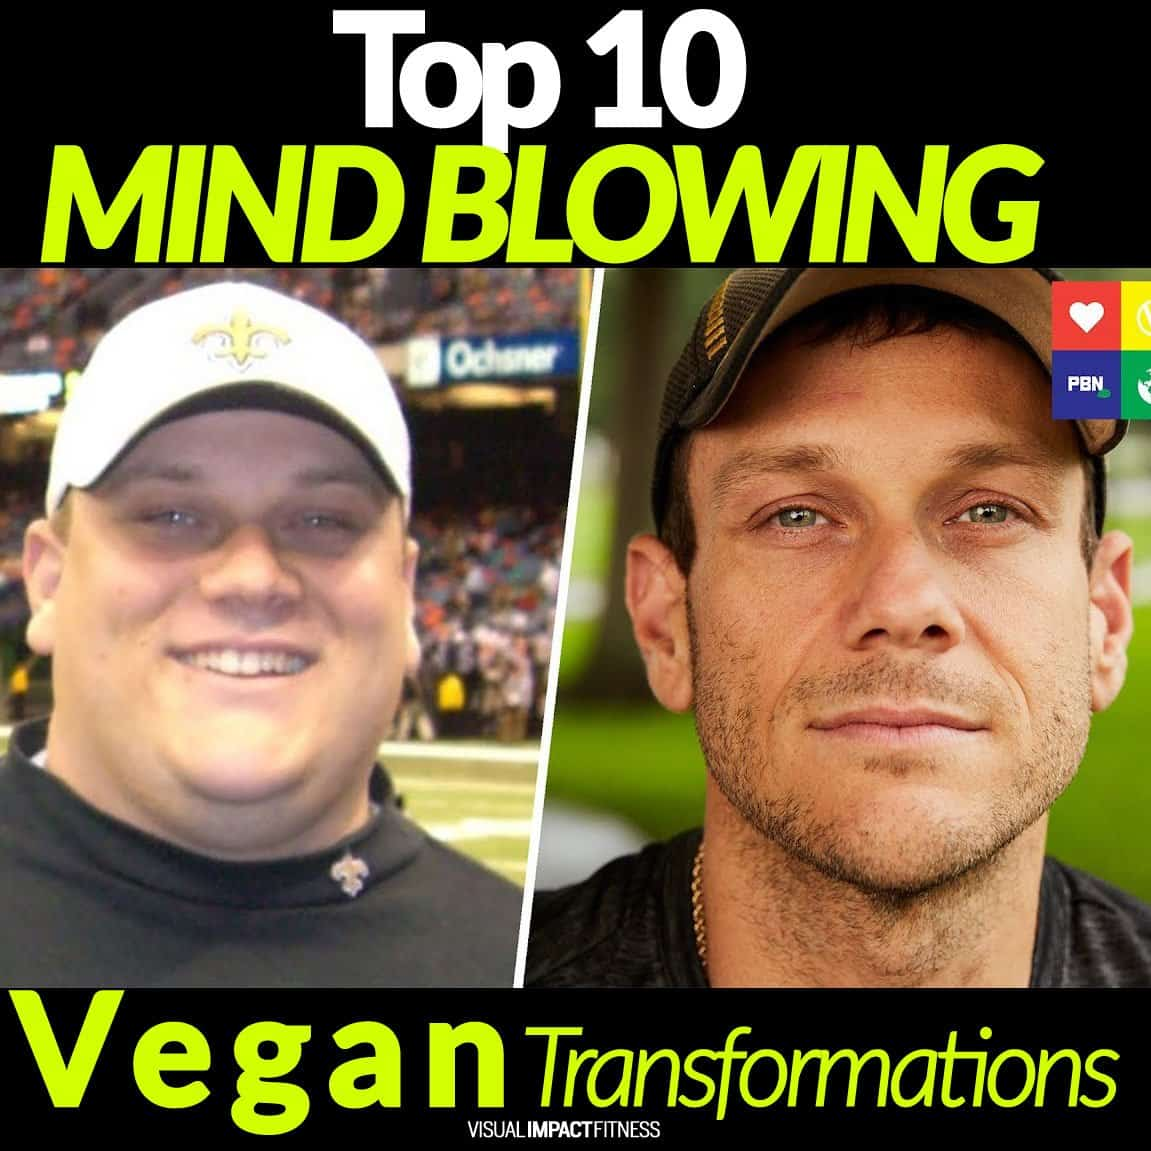 Top 10 MIND-BLOWING Vegan Transformations